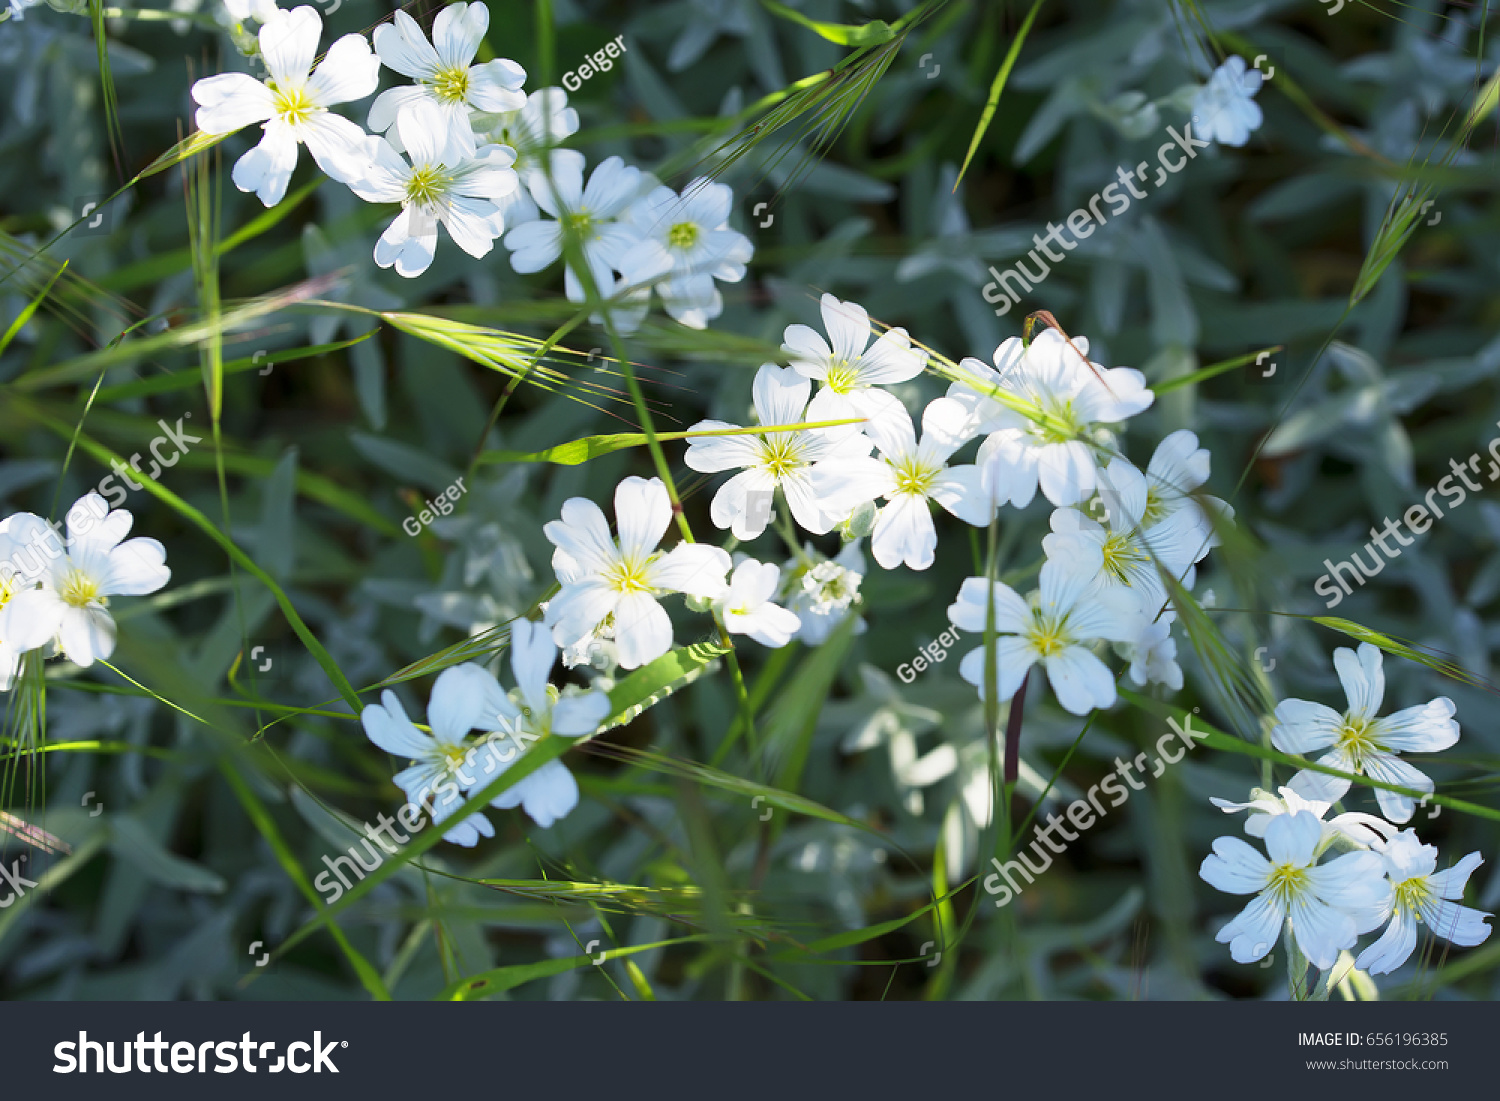 Beautiful White Flowers Grow Among Grass Stock Photo Royalty Free